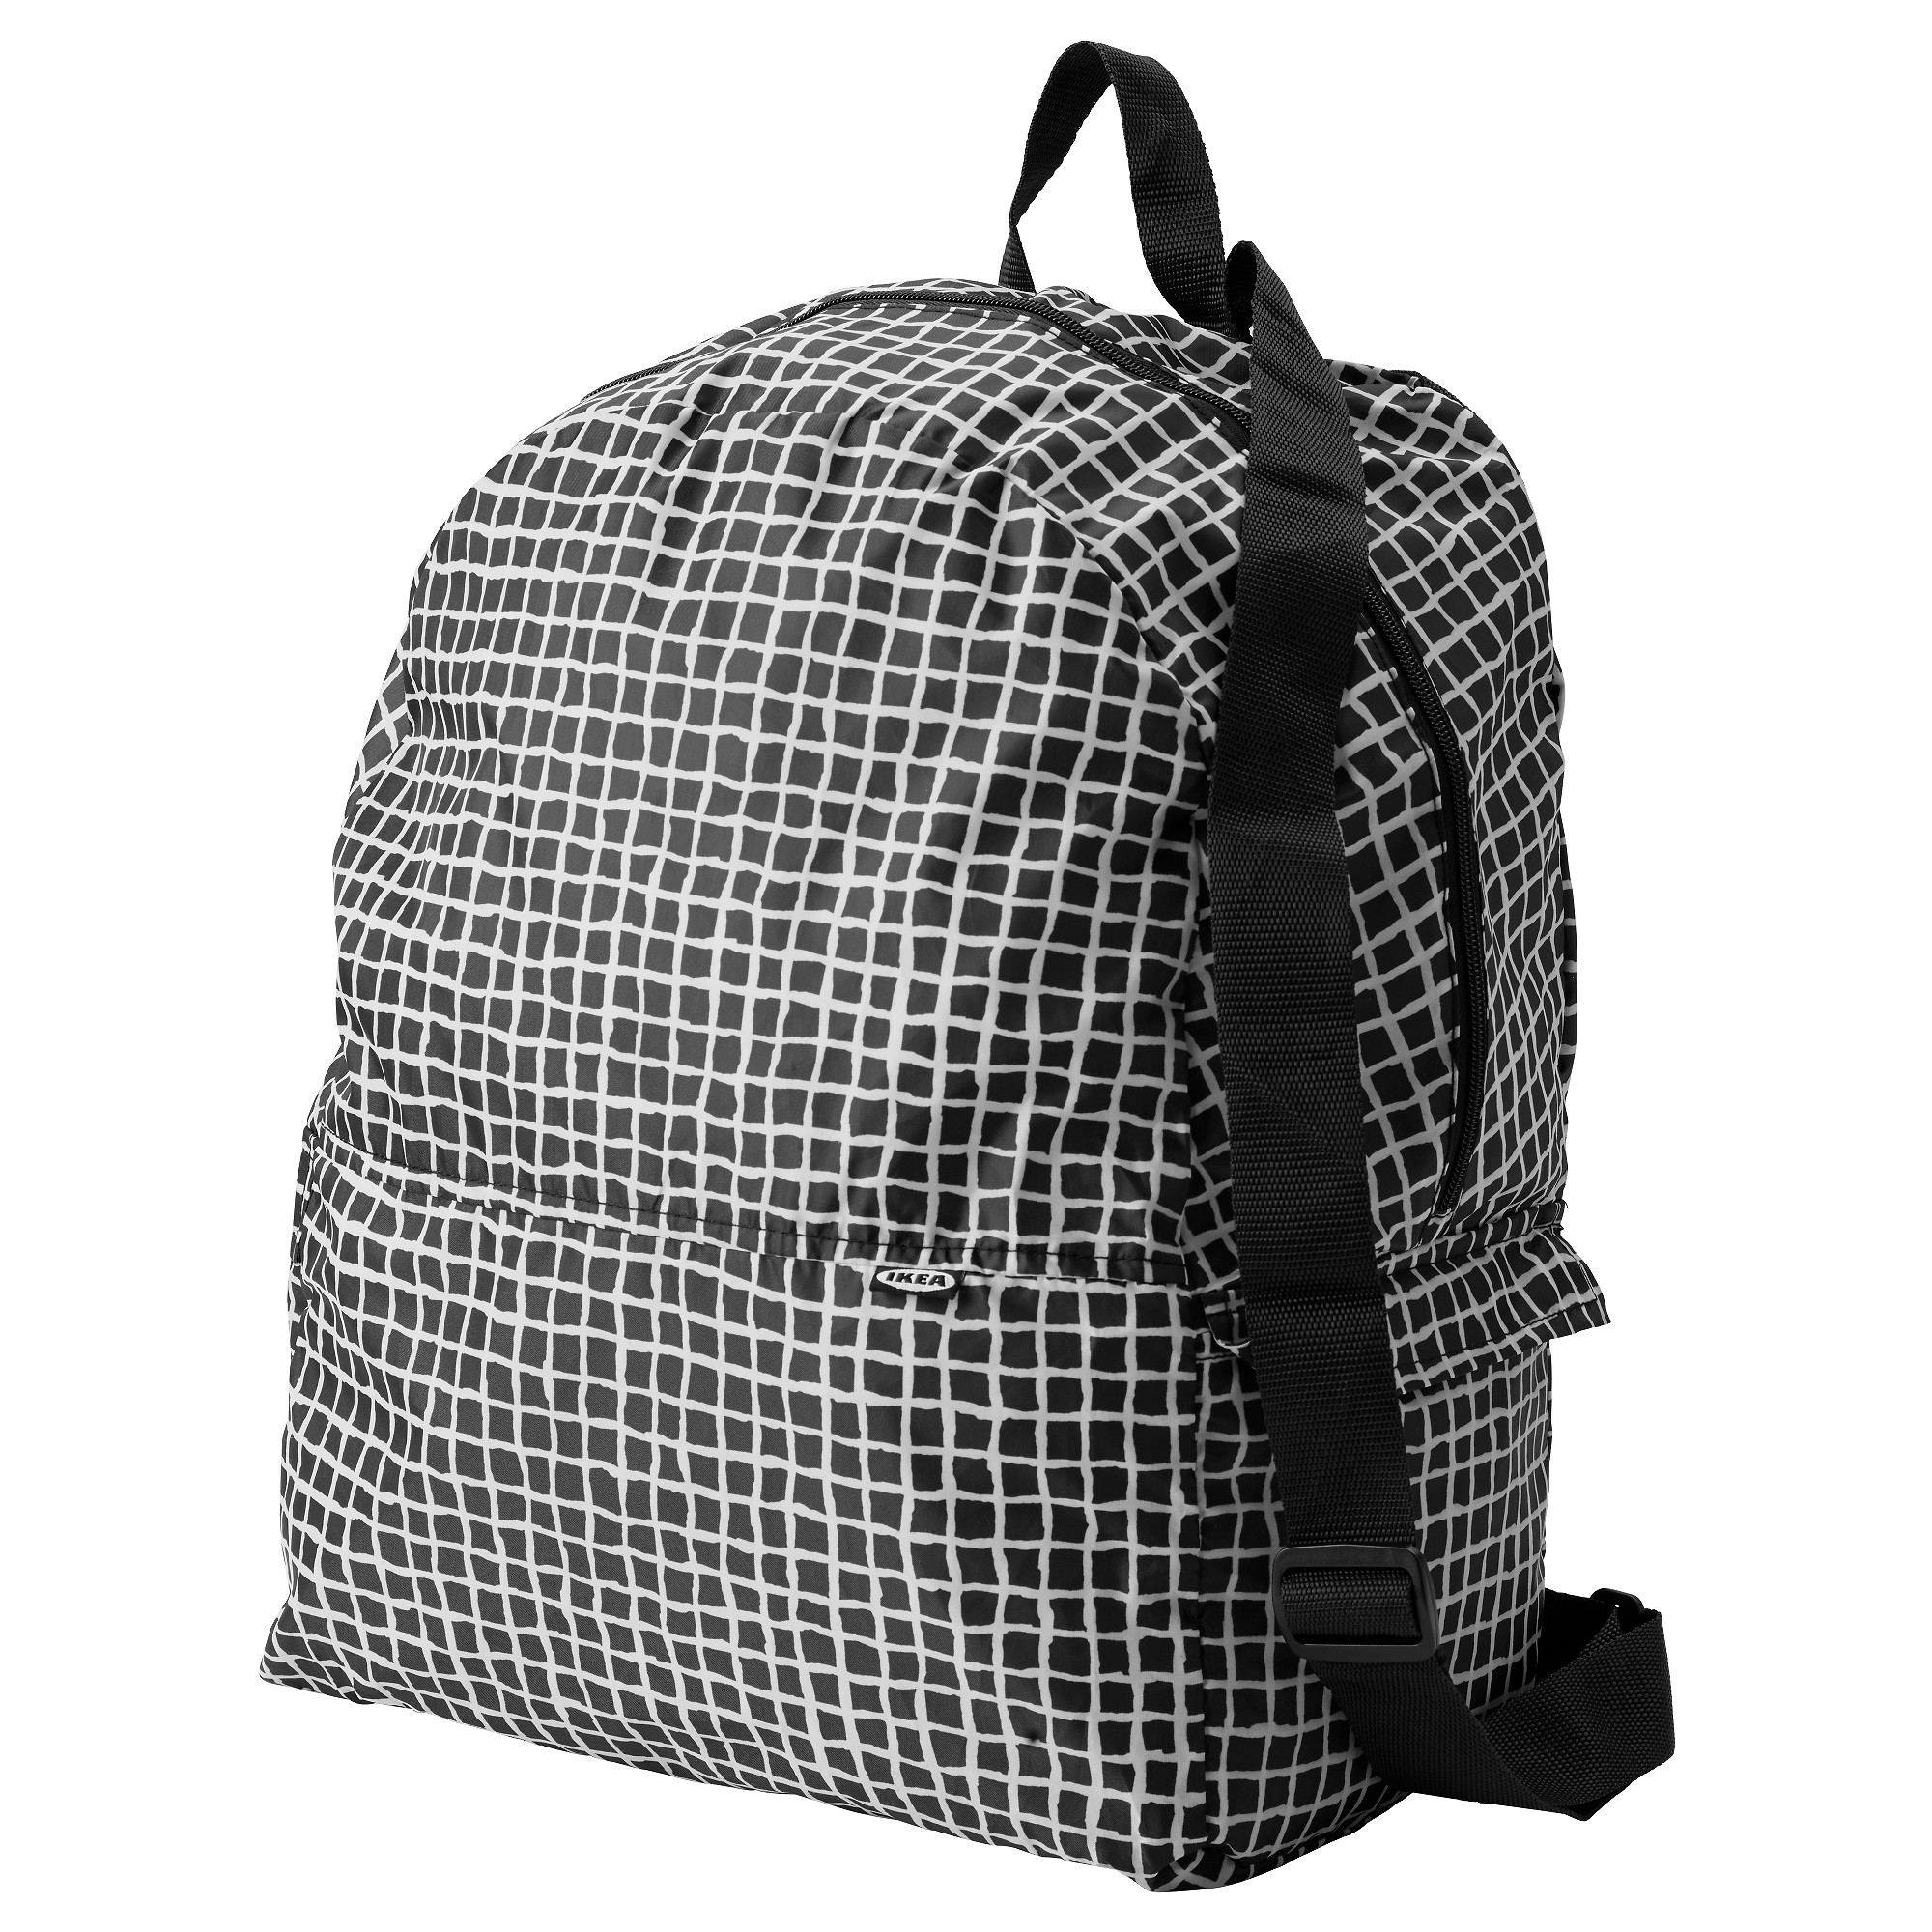 backpacks luggage travel accessories ikea